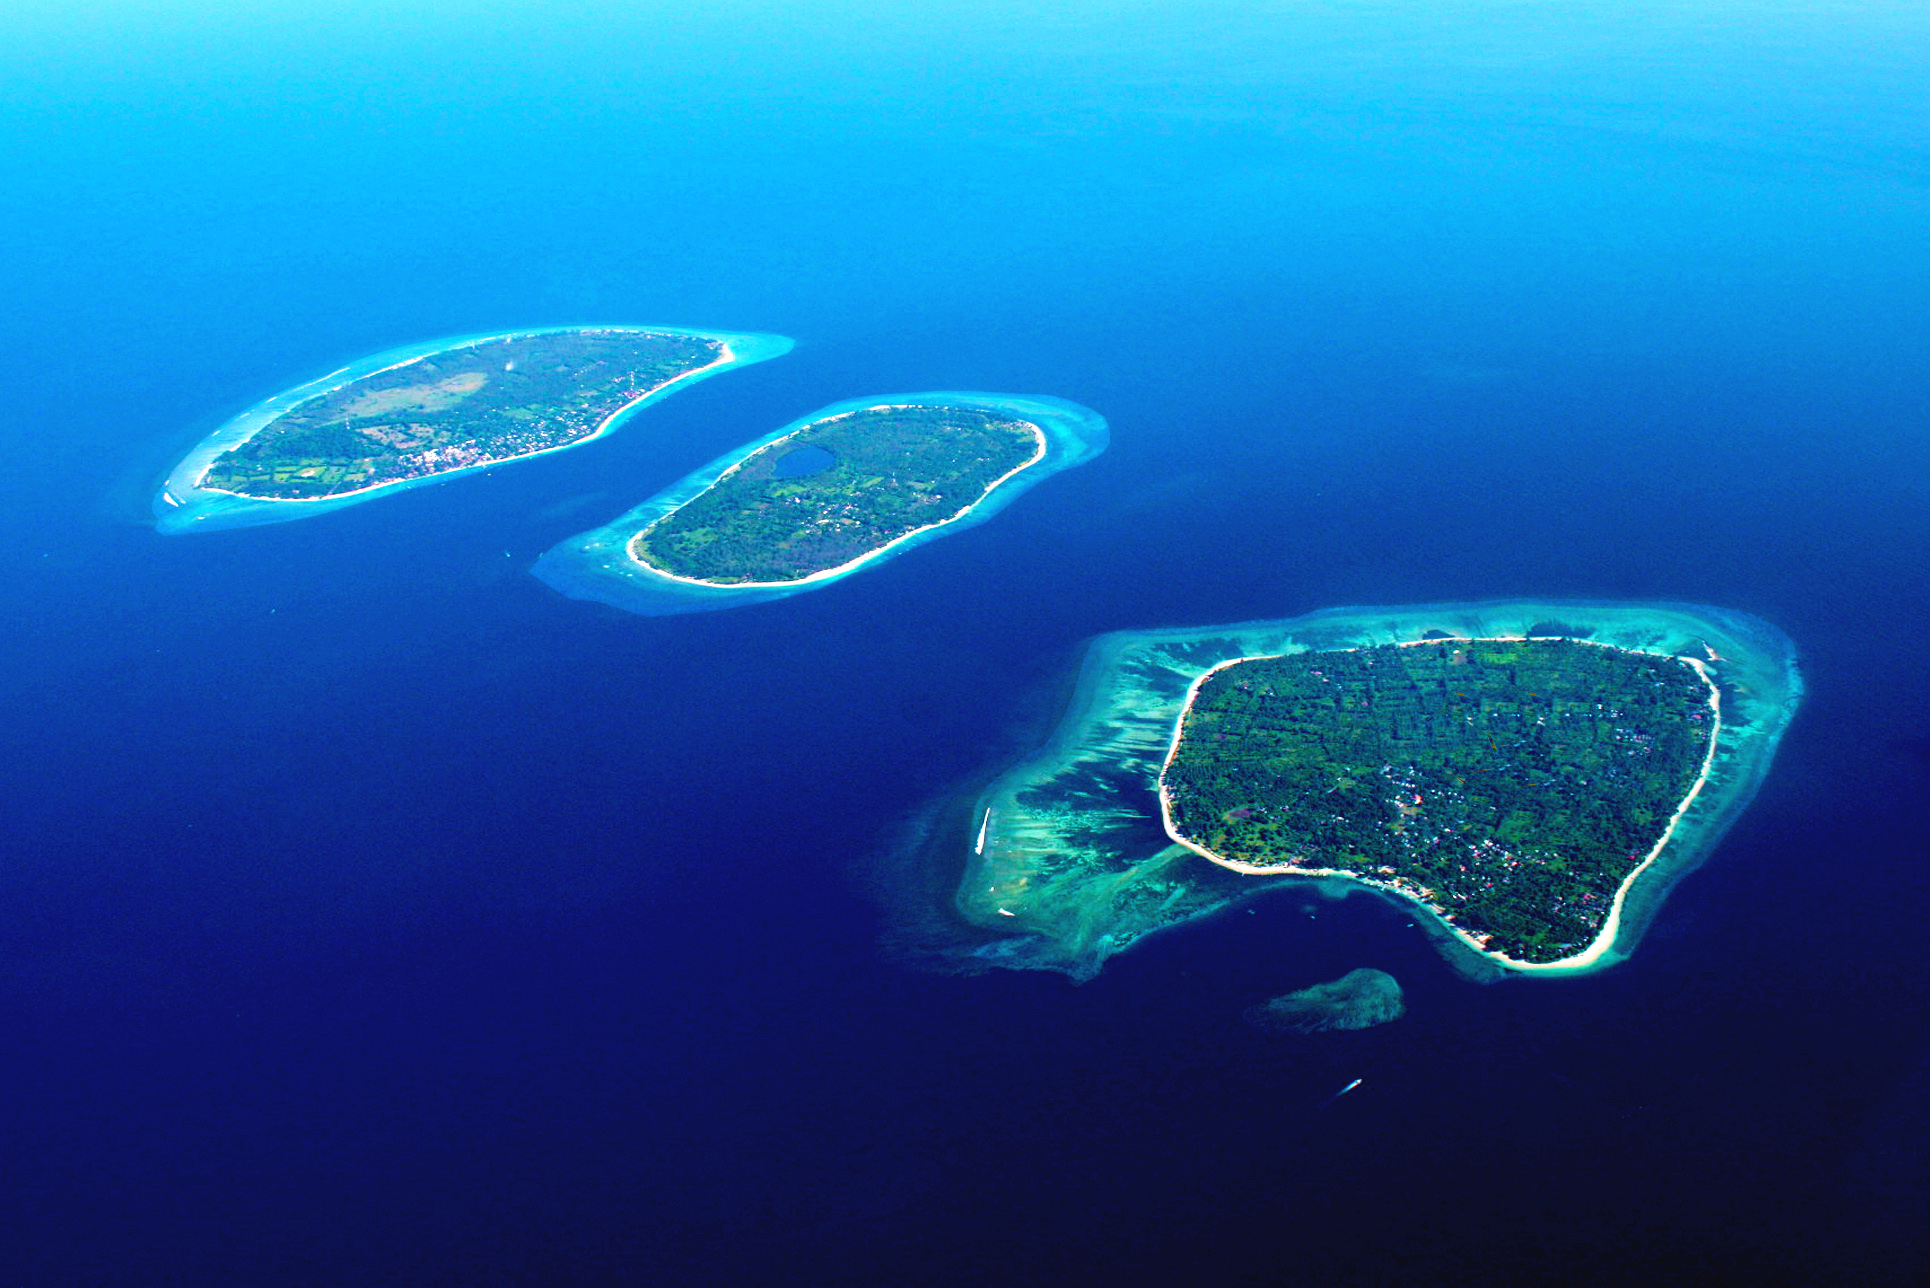 Aerial view of the Gili Islands